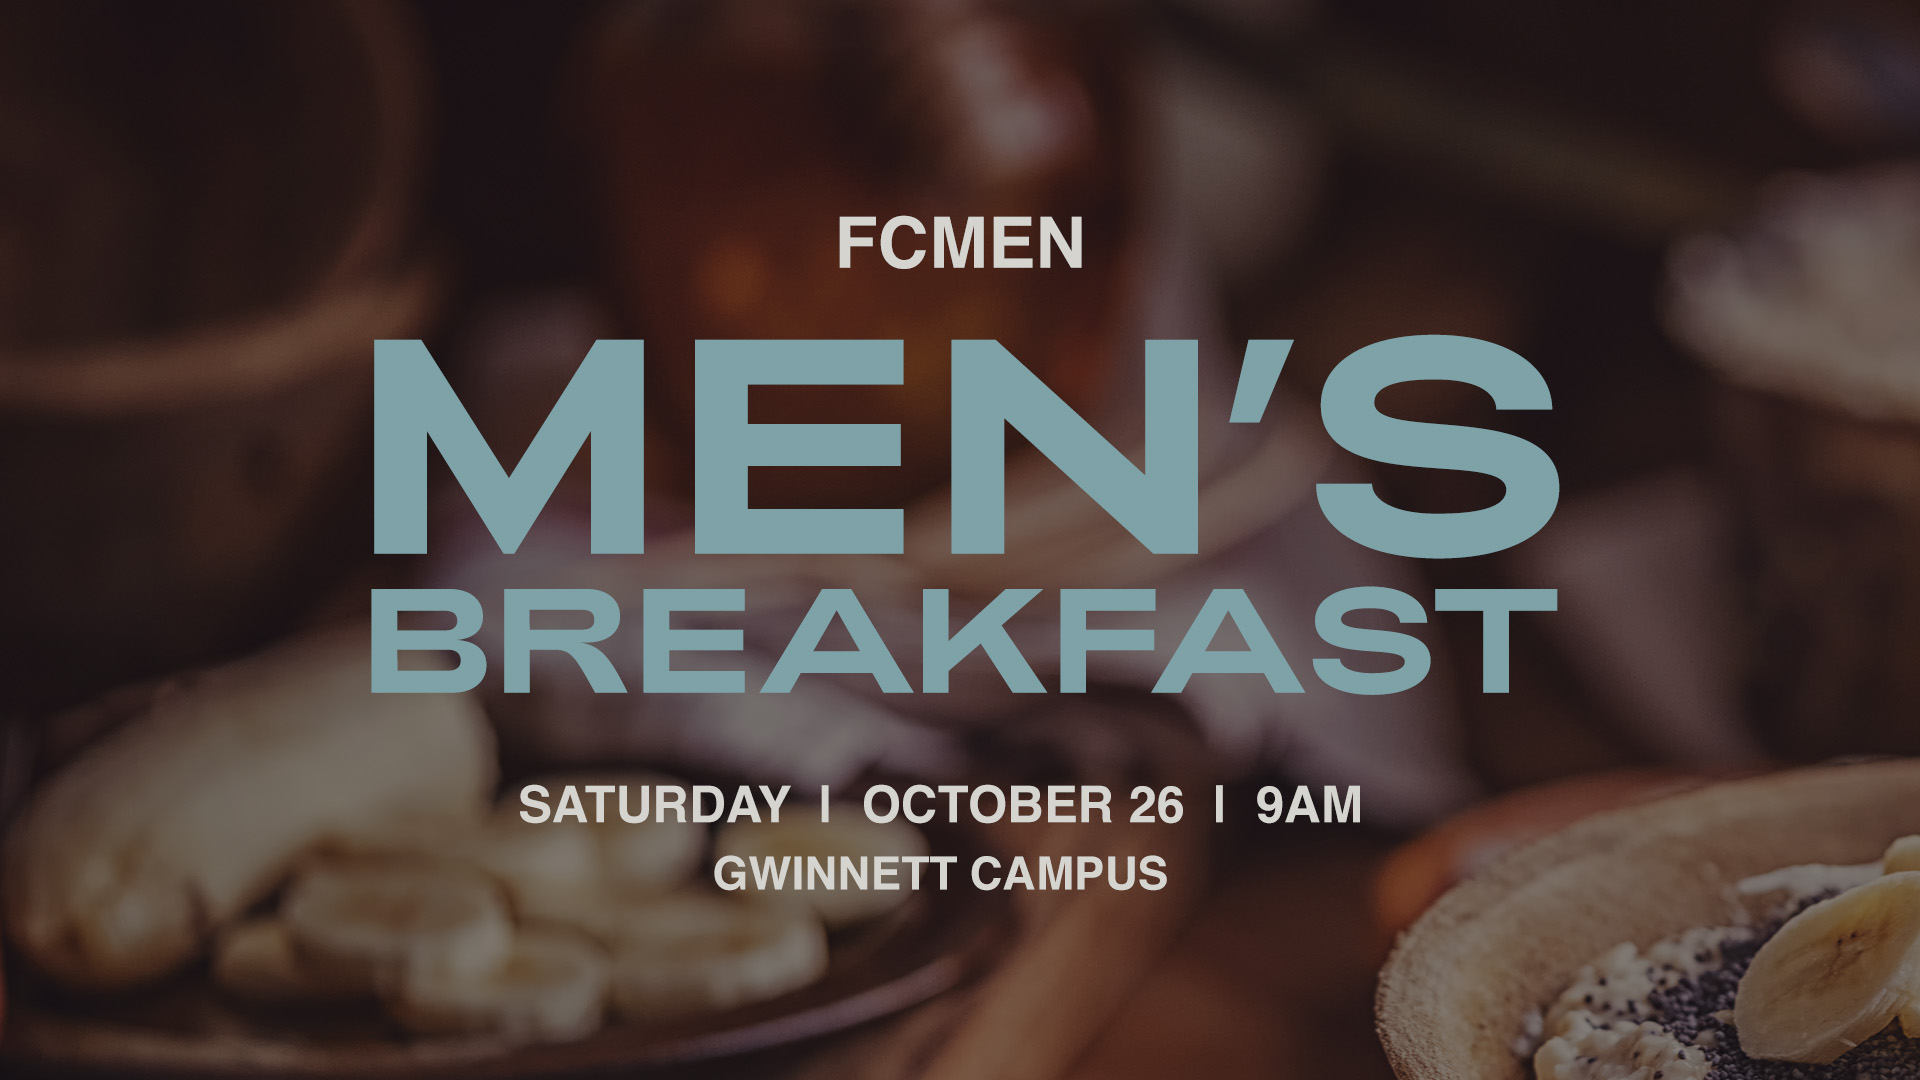 FCMen's Breakfast at the Gwinnett campus